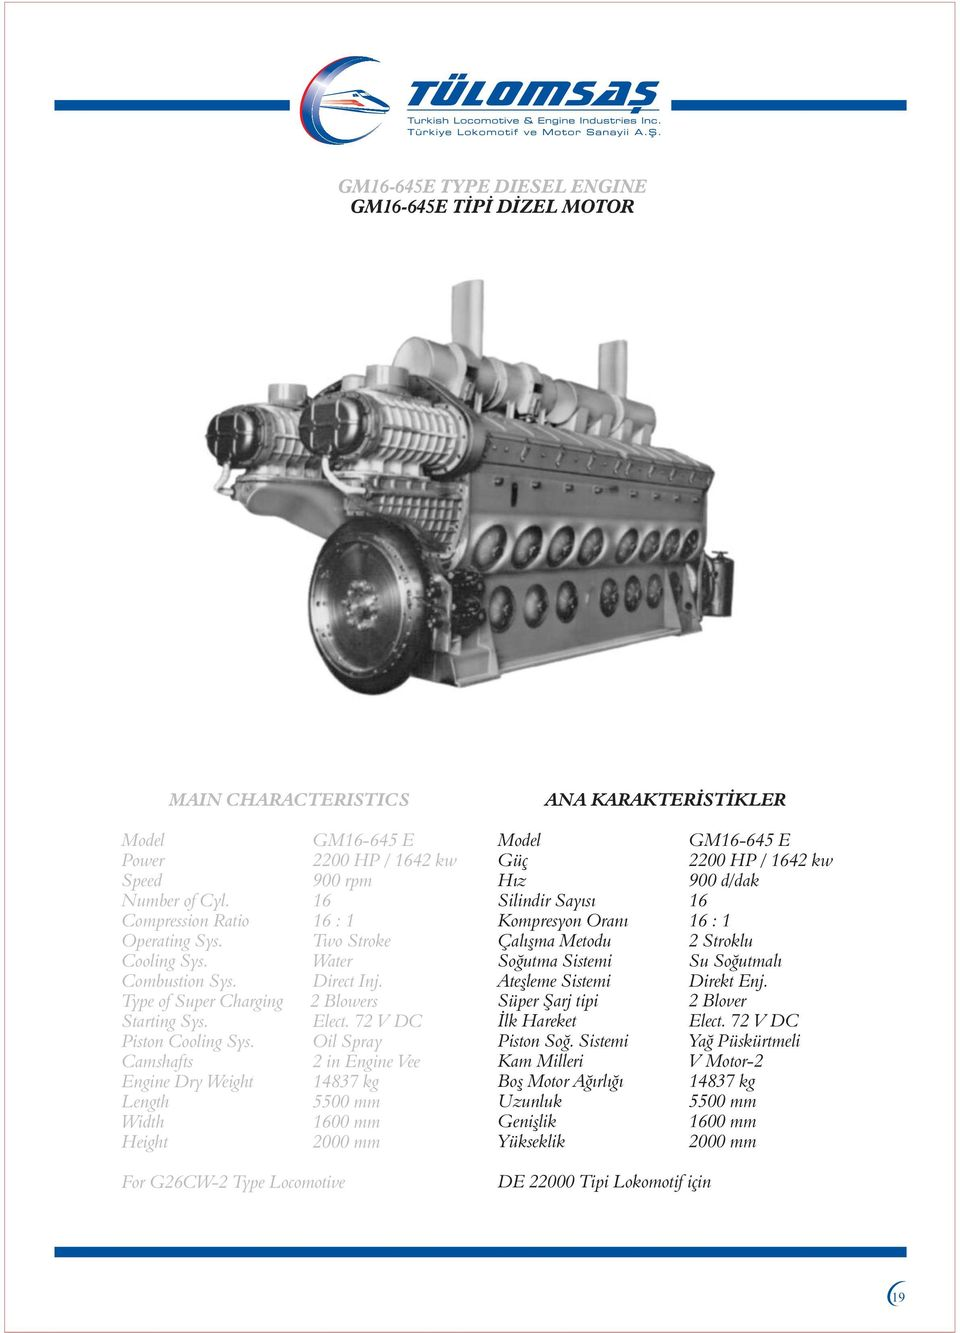 Oil Spray Camshafts 2 in Engine Vee Engine Dry Weight 14837 kg Length 5500 mm Width 1600 mm Height 2000 mm For G26CW-2 Type Locomotive Model GM16-645 E Güç 2200 HP / 1642 kw Hýz900 d/dak Silindir